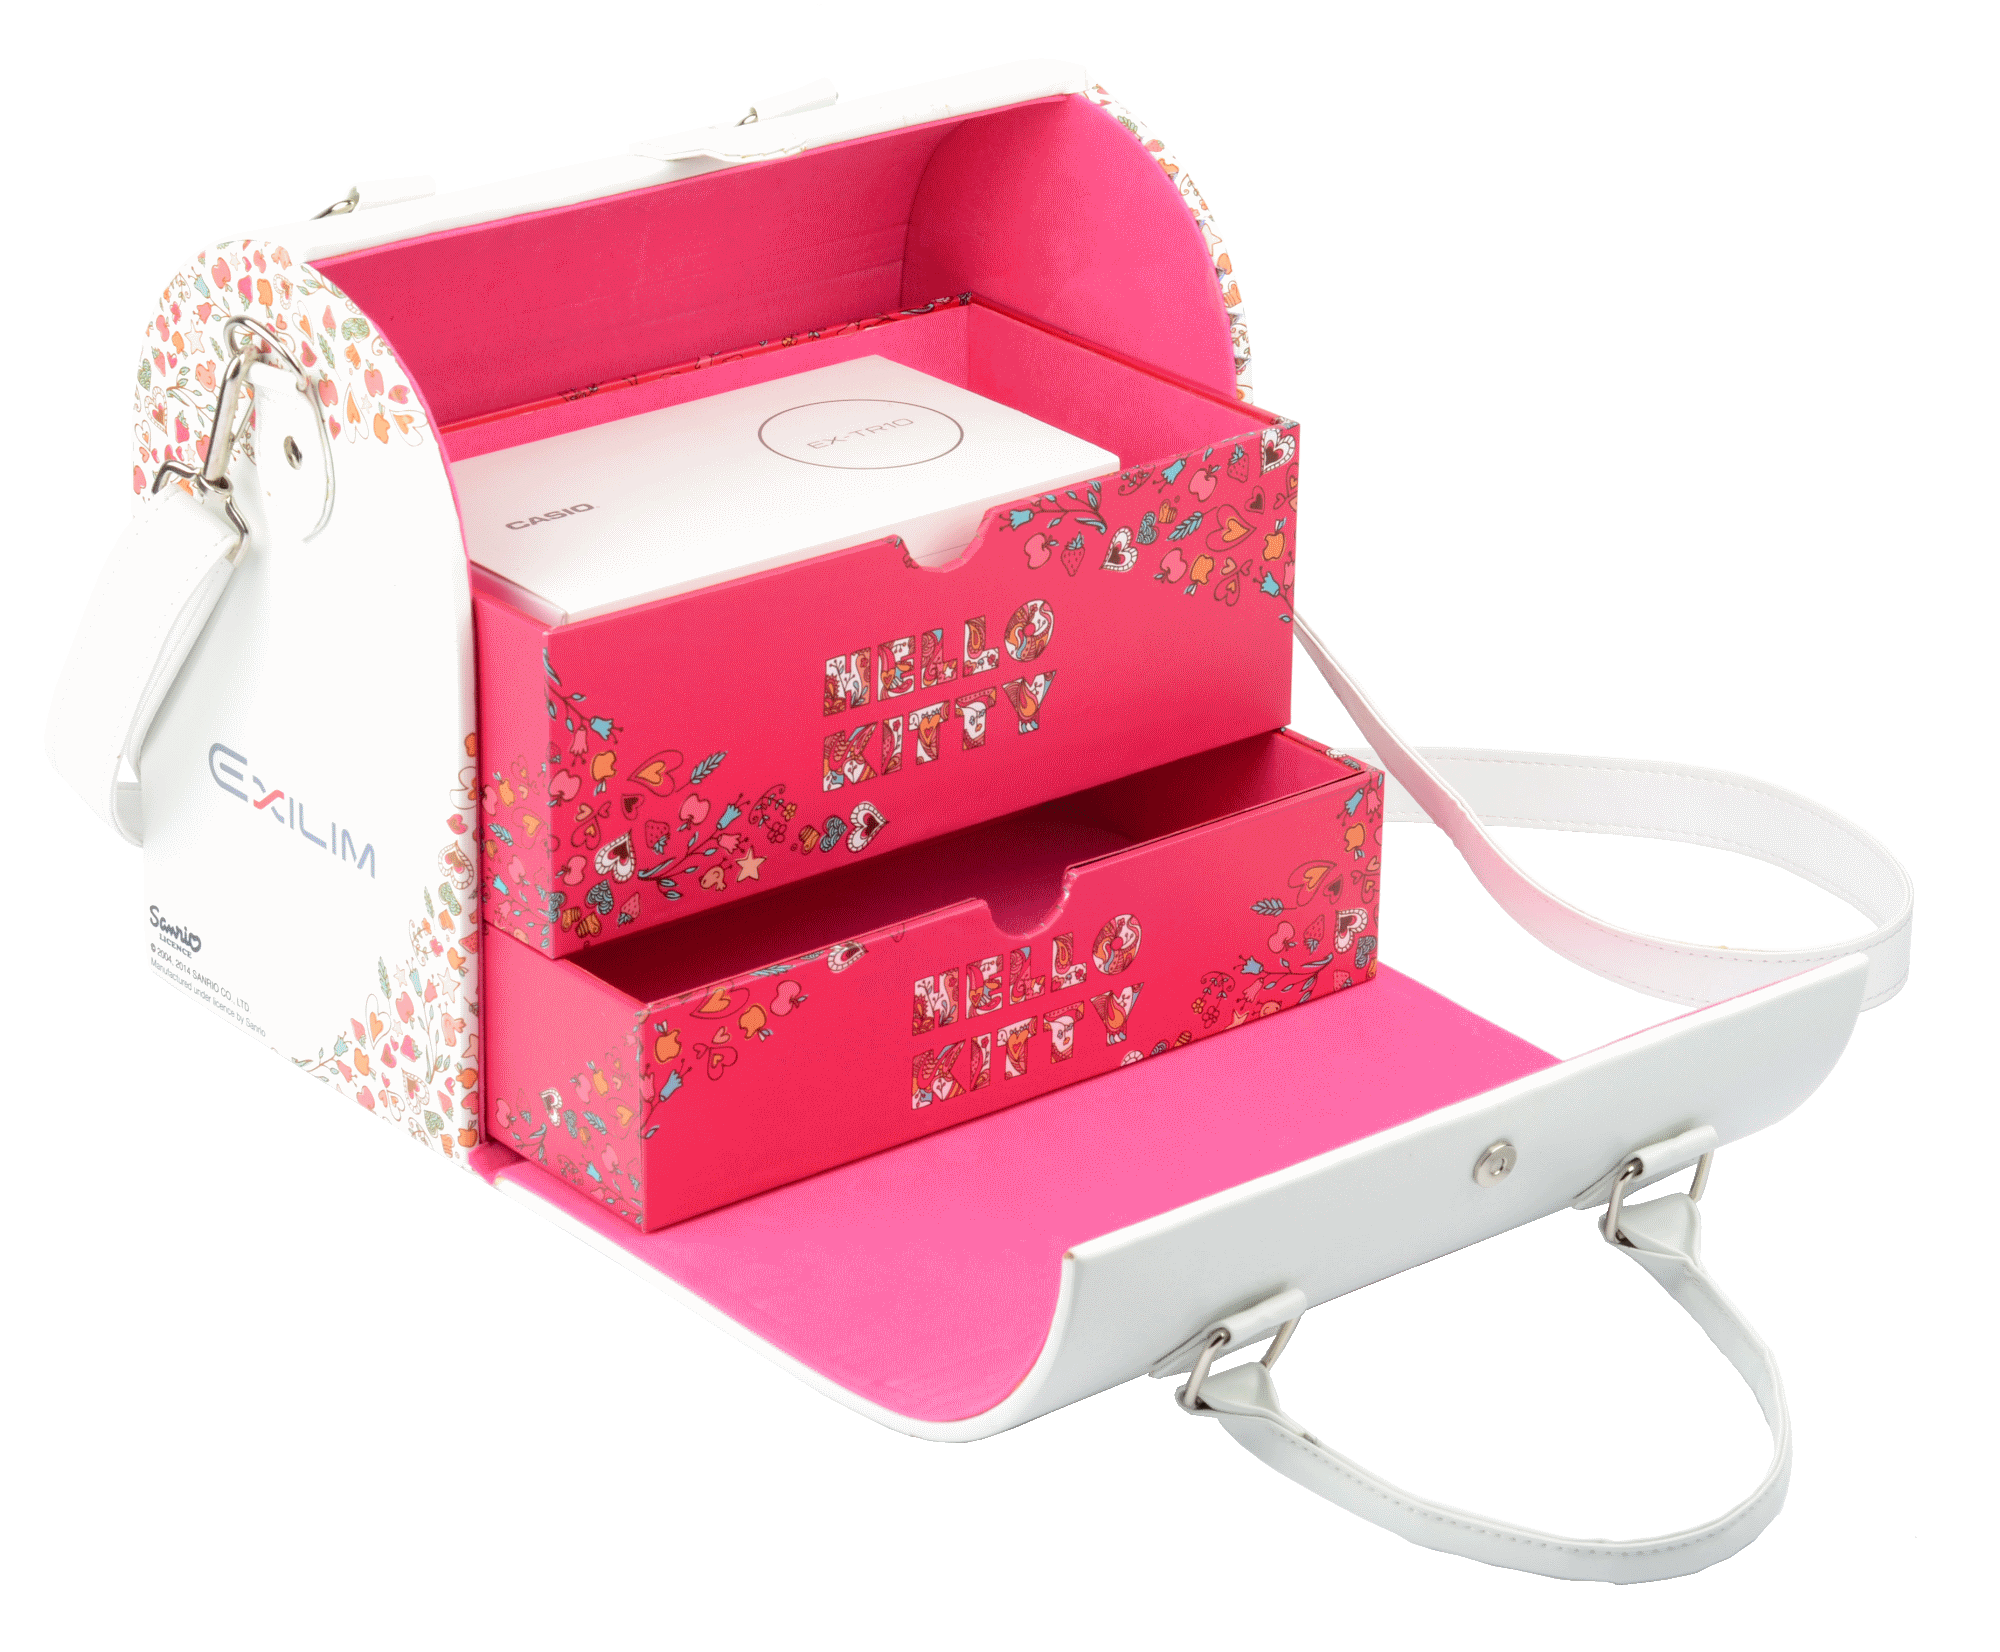 Casio TR10 x Hello Kitty -Box Open